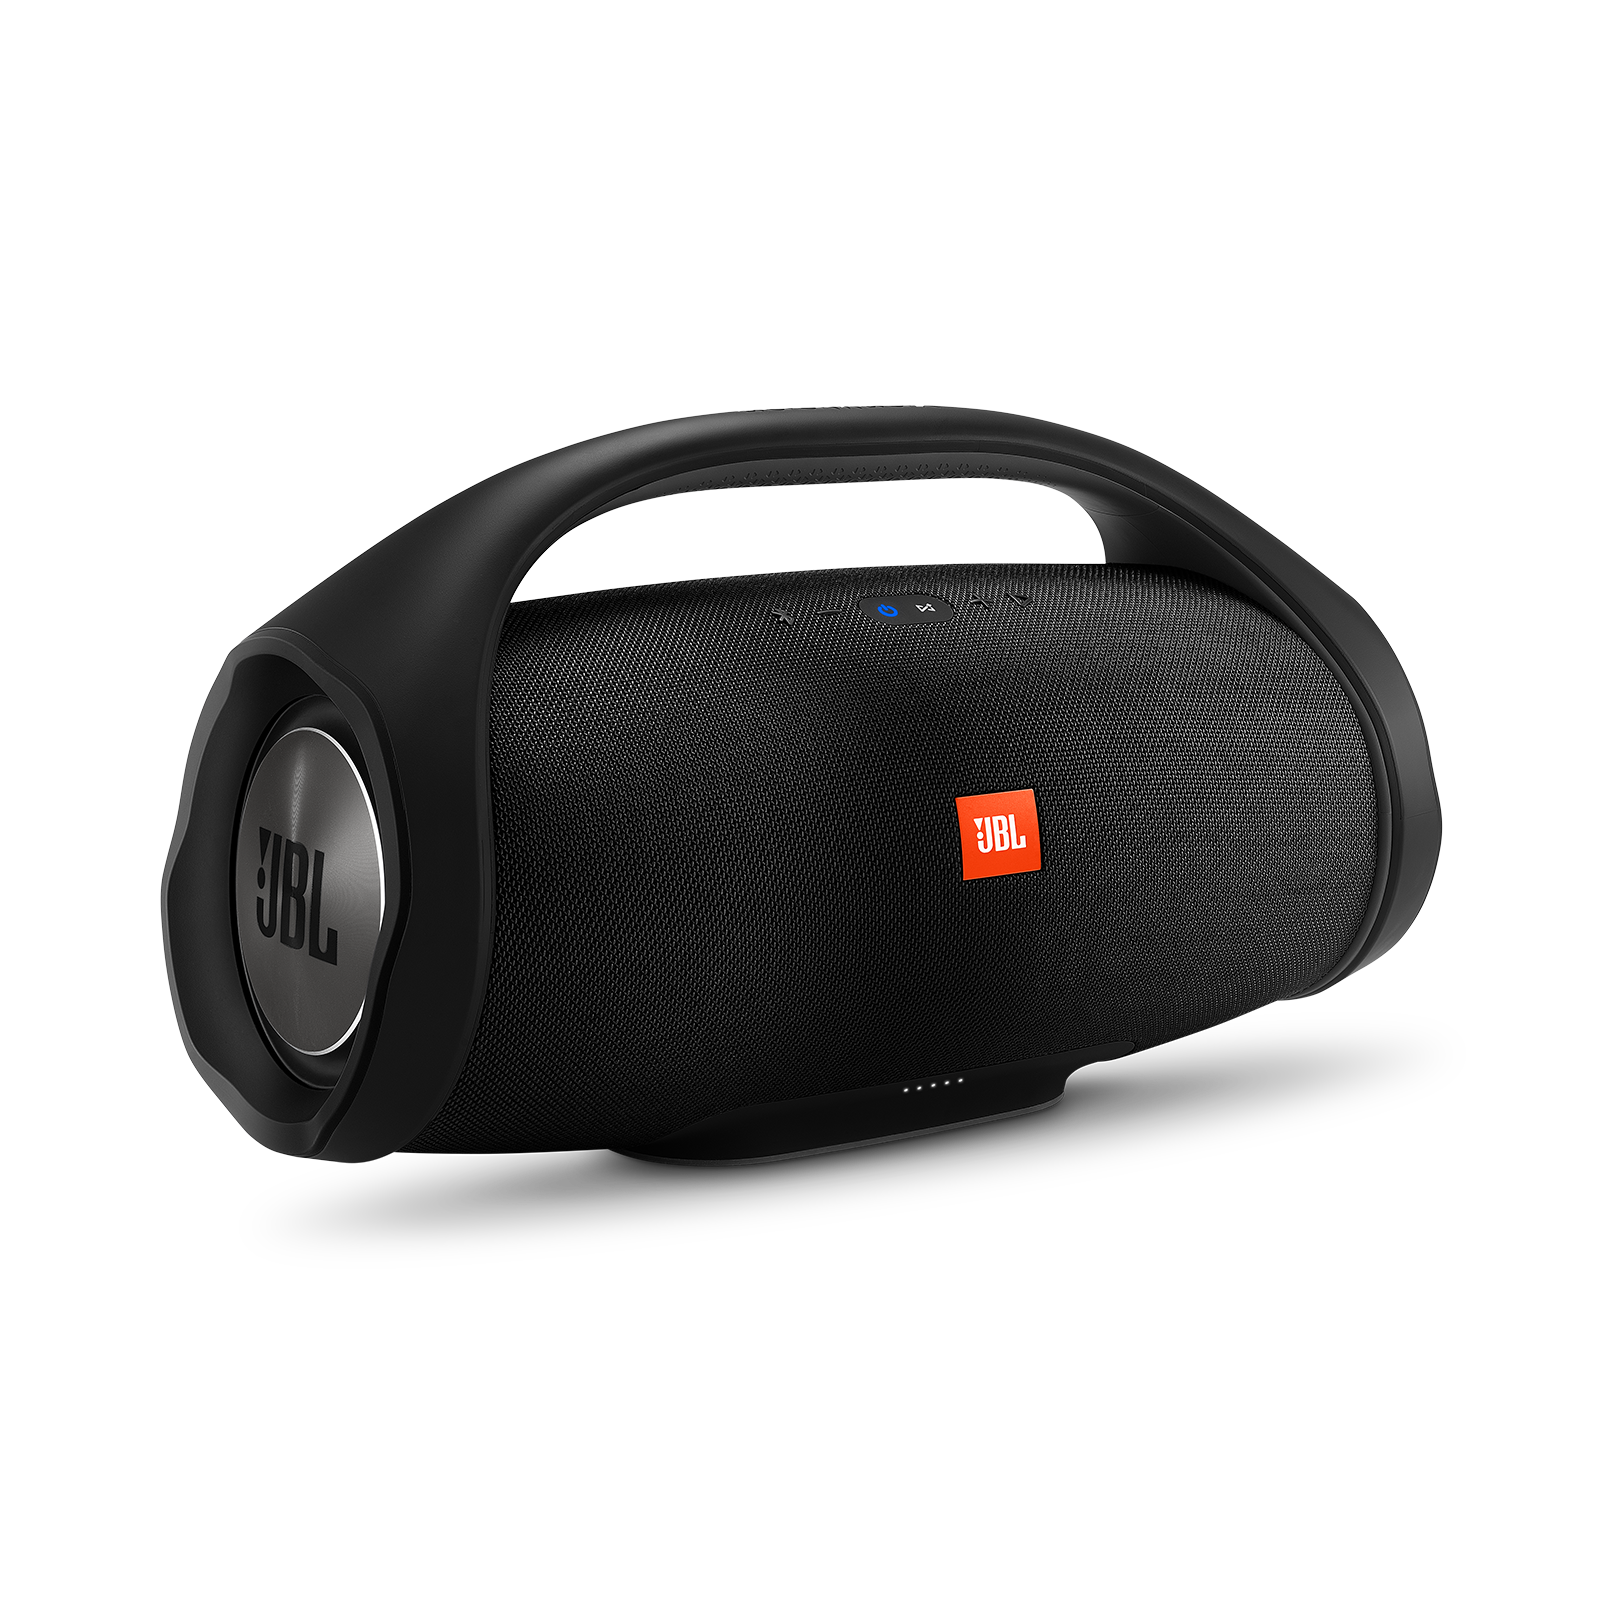 jbl boombox enceinte bluetooth portable. Black Bedroom Furniture Sets. Home Design Ideas